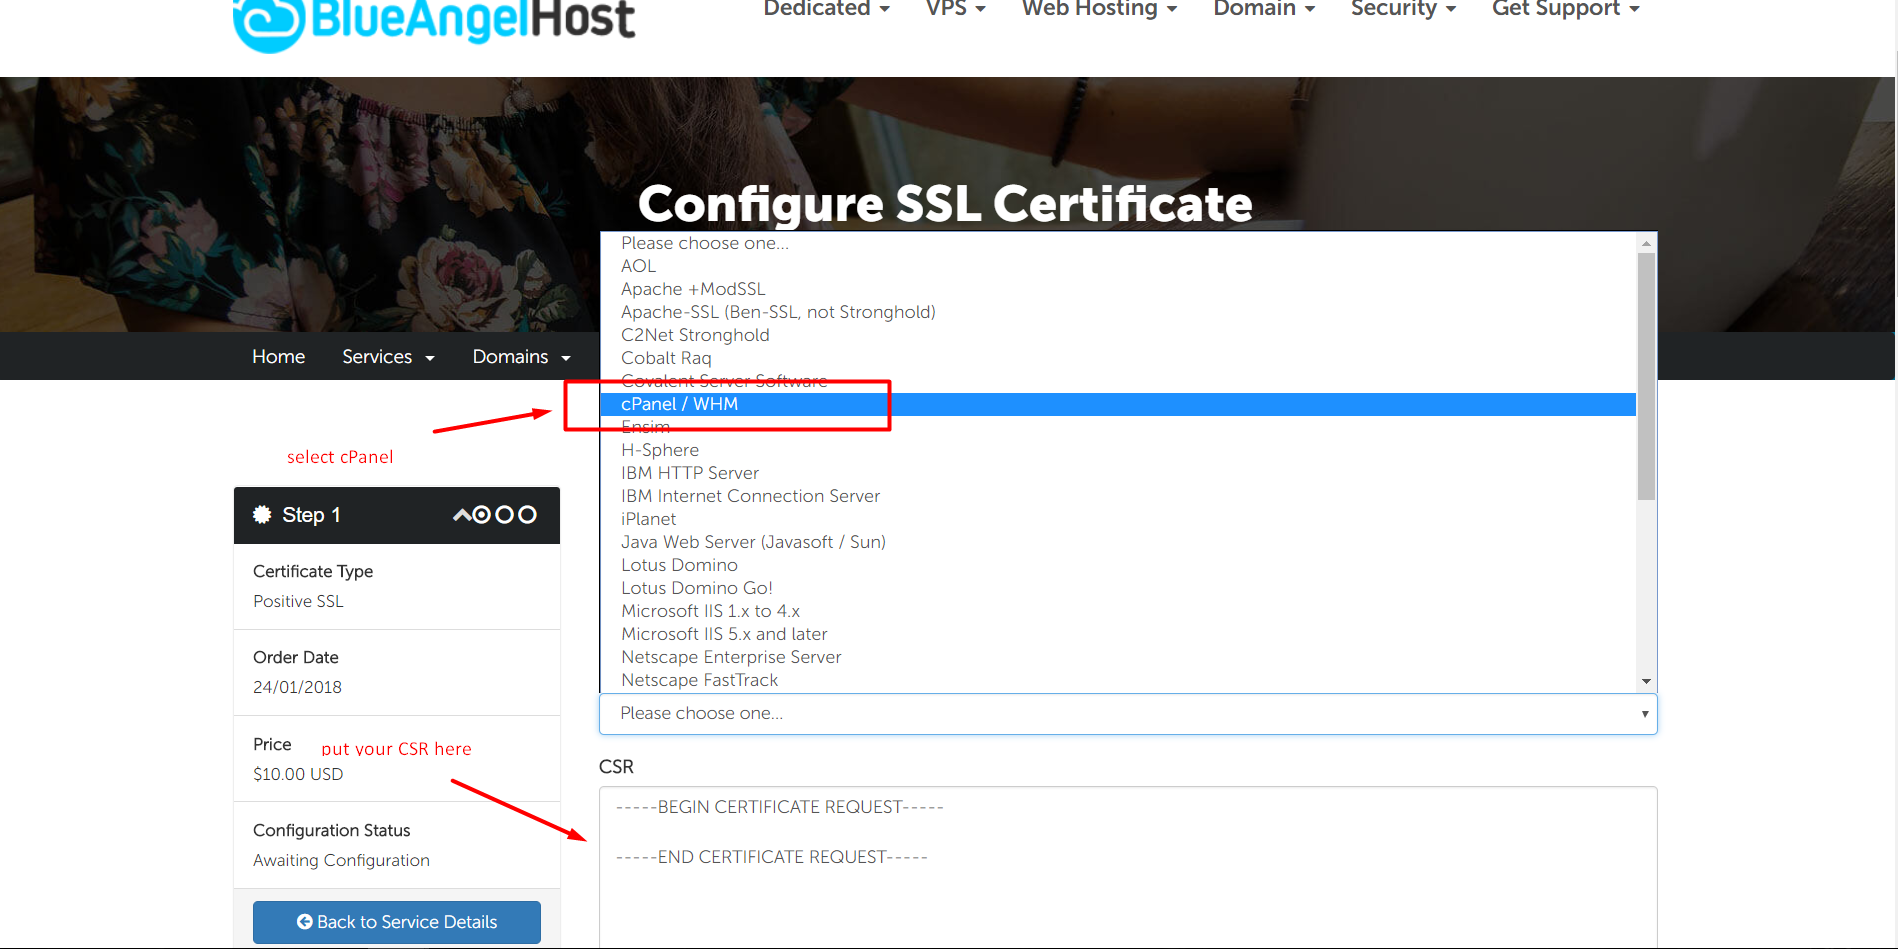 How To Configure Ssl Certificate Knowledgebase Blueangelhost